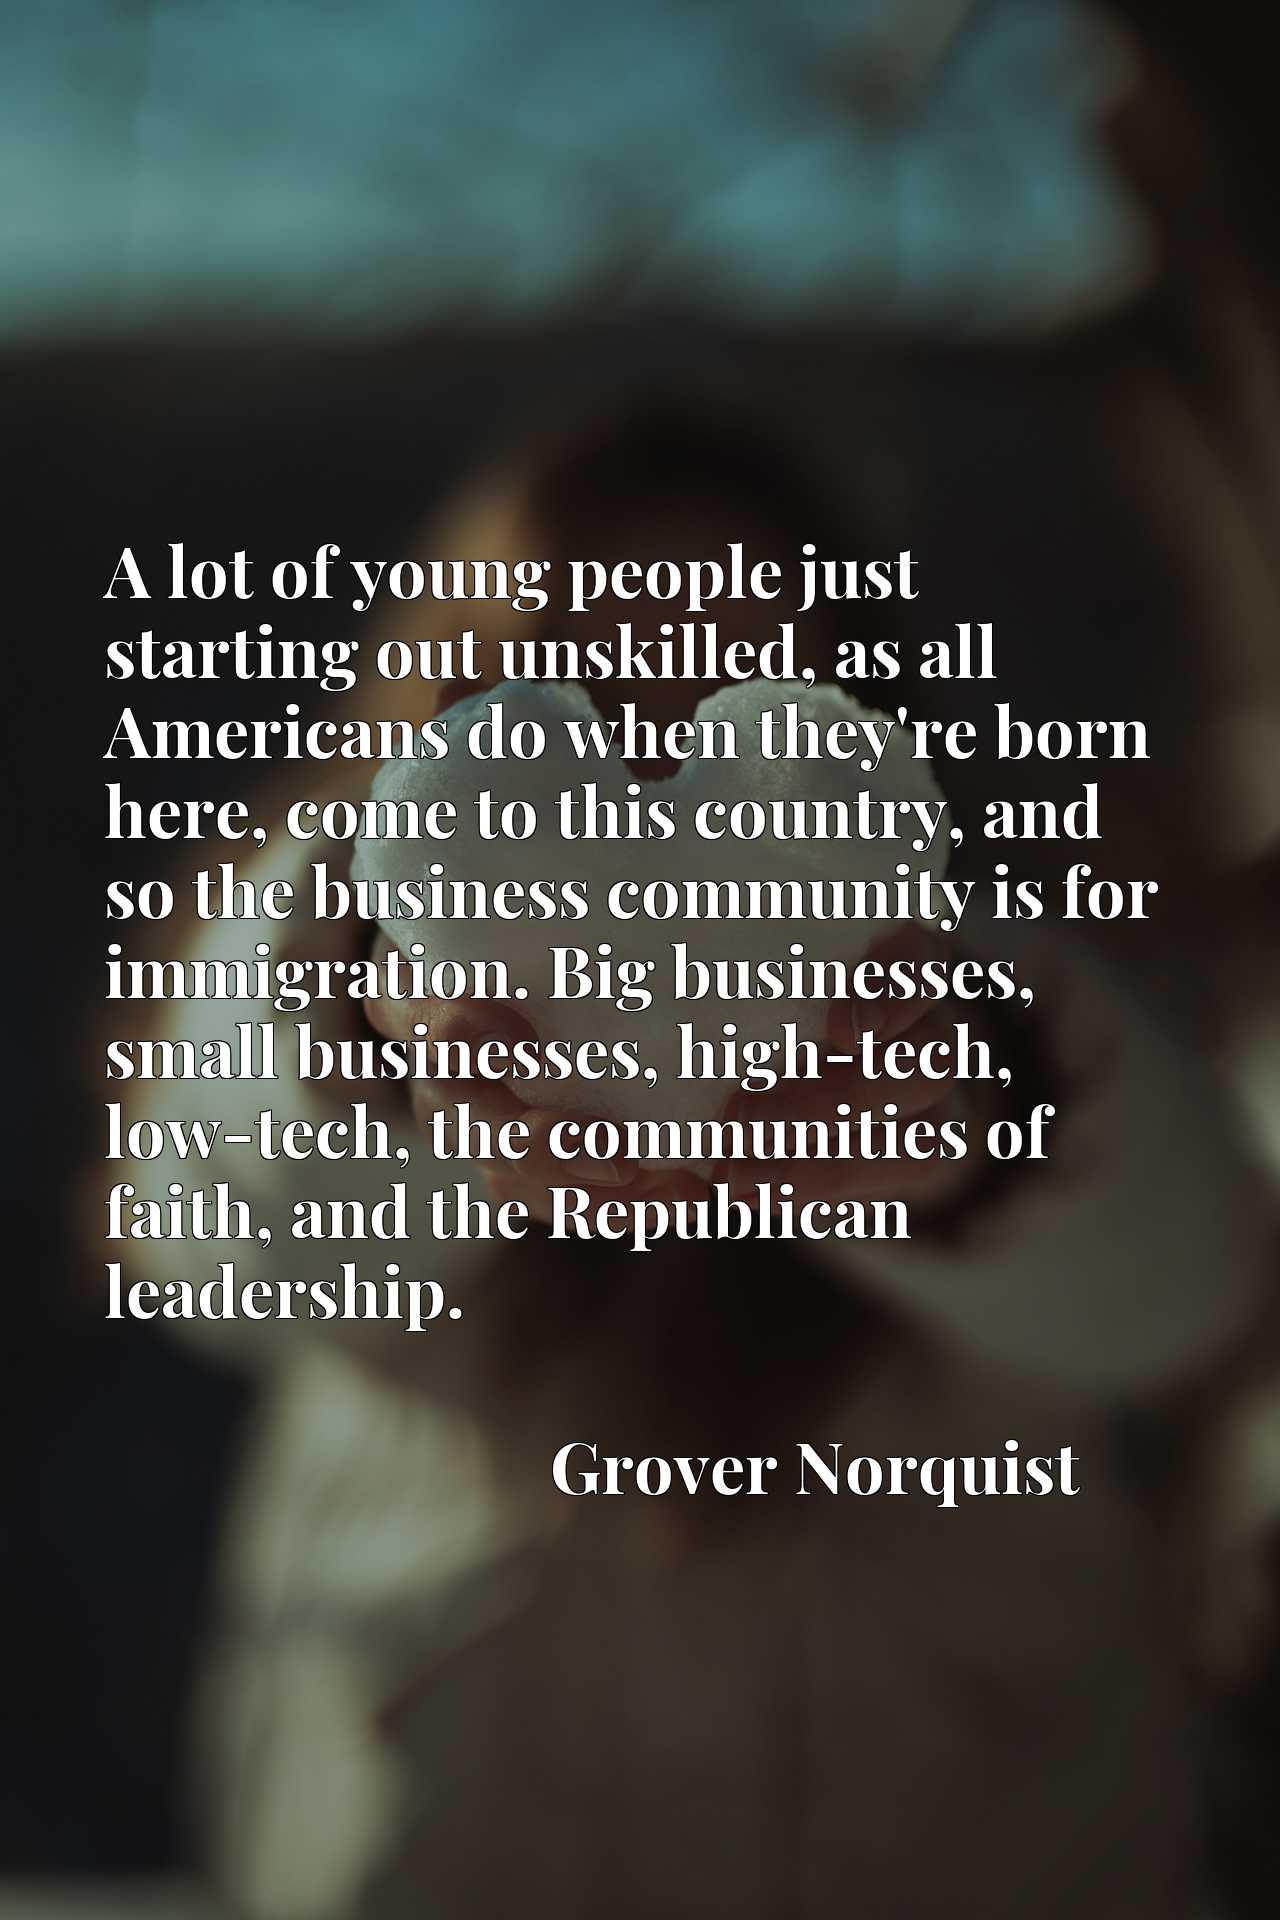 A lot of young people just starting out unskilled, as all Americans do when they're born here, come to this country, and so the business community is for immigration. Big businesses, small businesses, high-tech, low-tech, the communities of faith, and the Republican leadership.